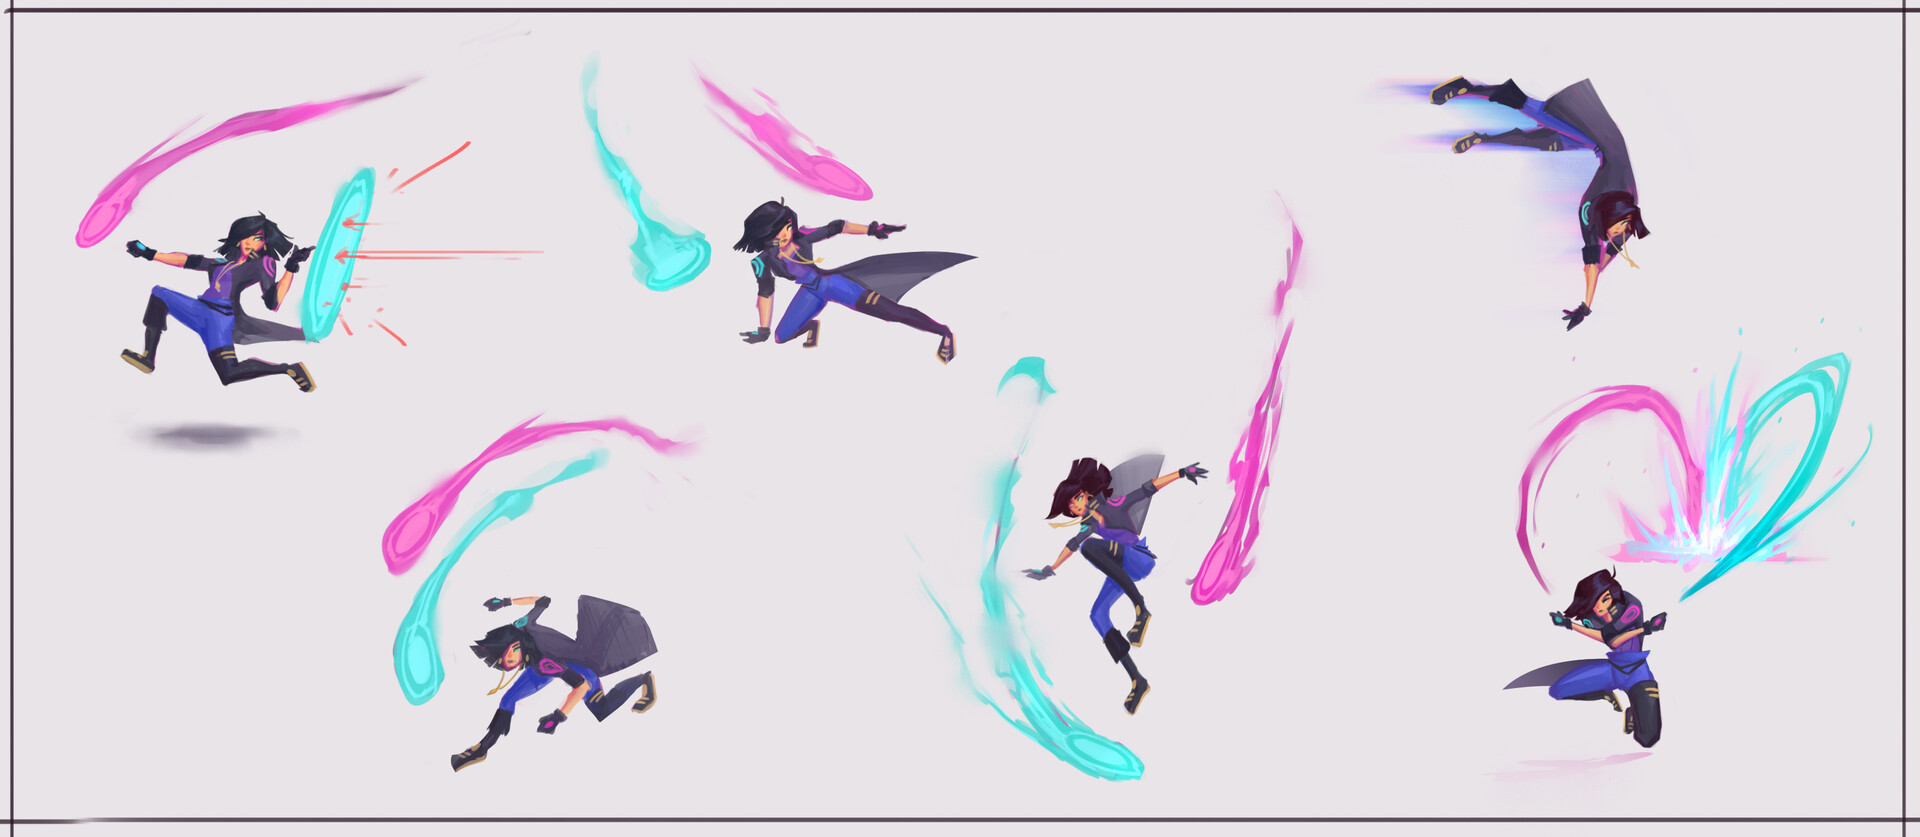 Pose/action exploration for how she moves and how her discs move